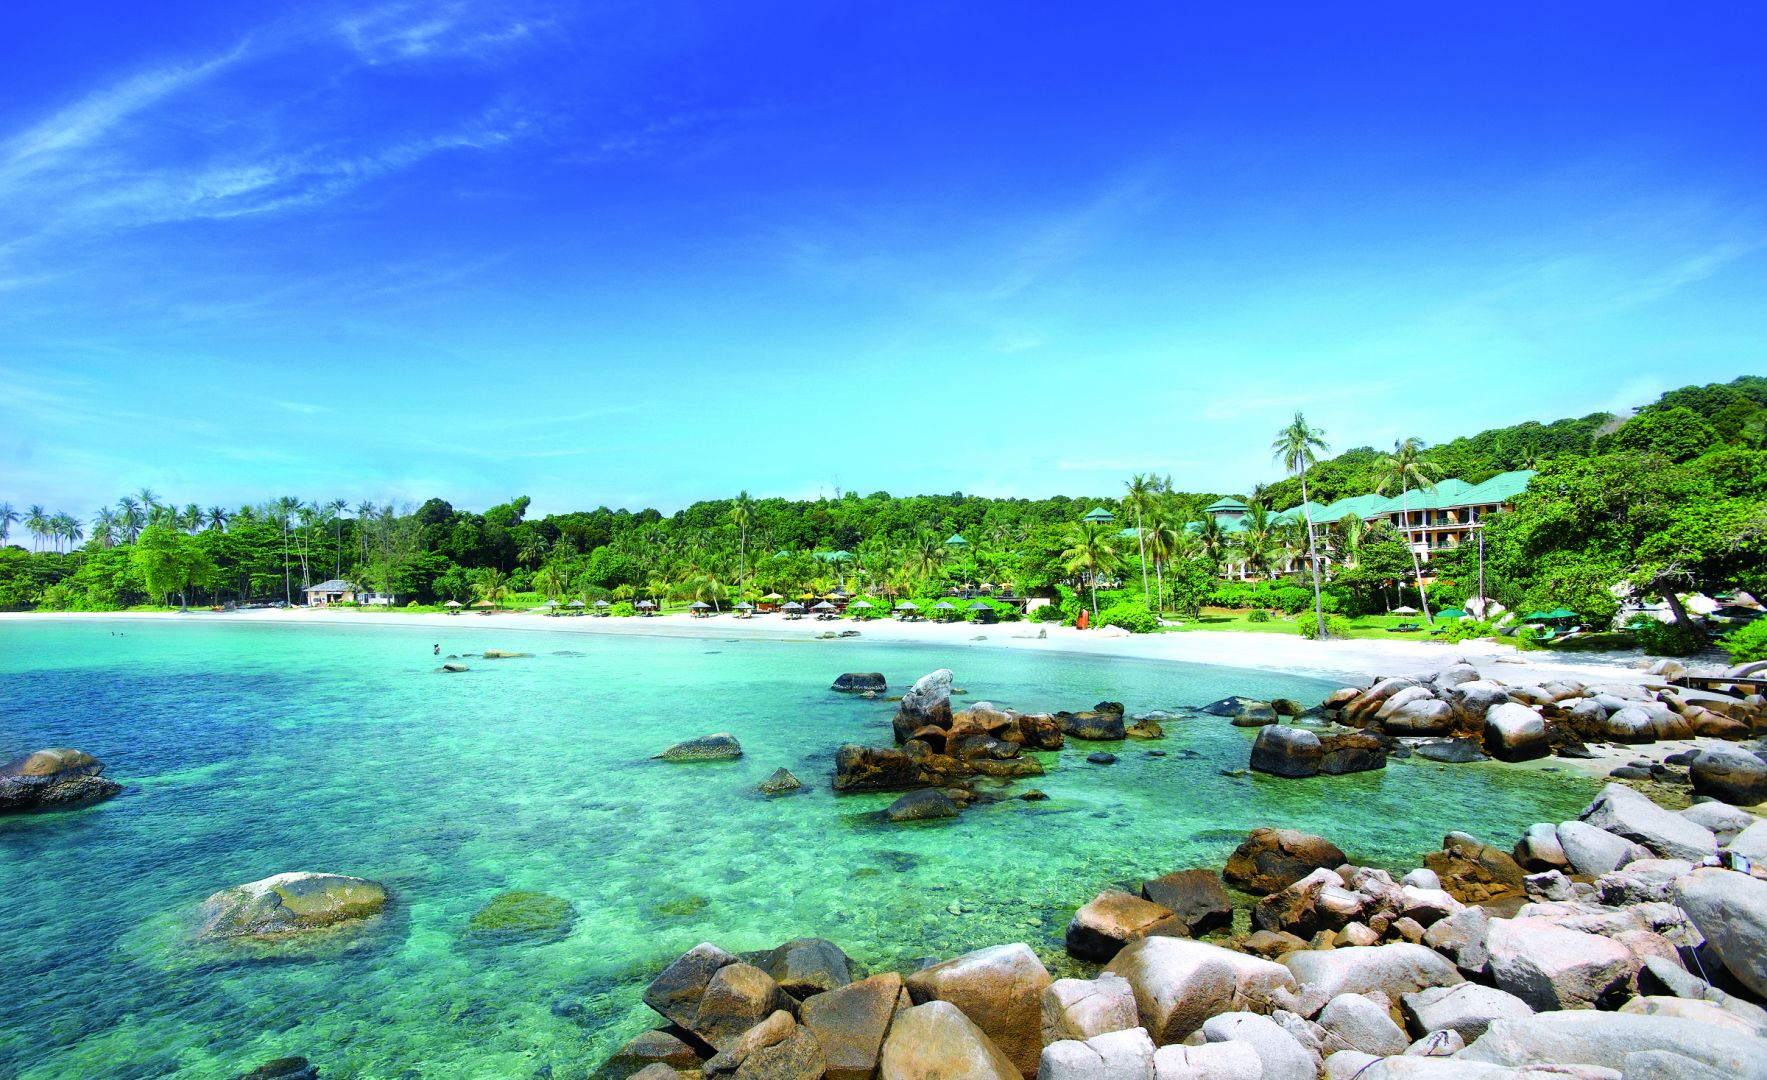 Reasons why Bintan should be in your bucket list